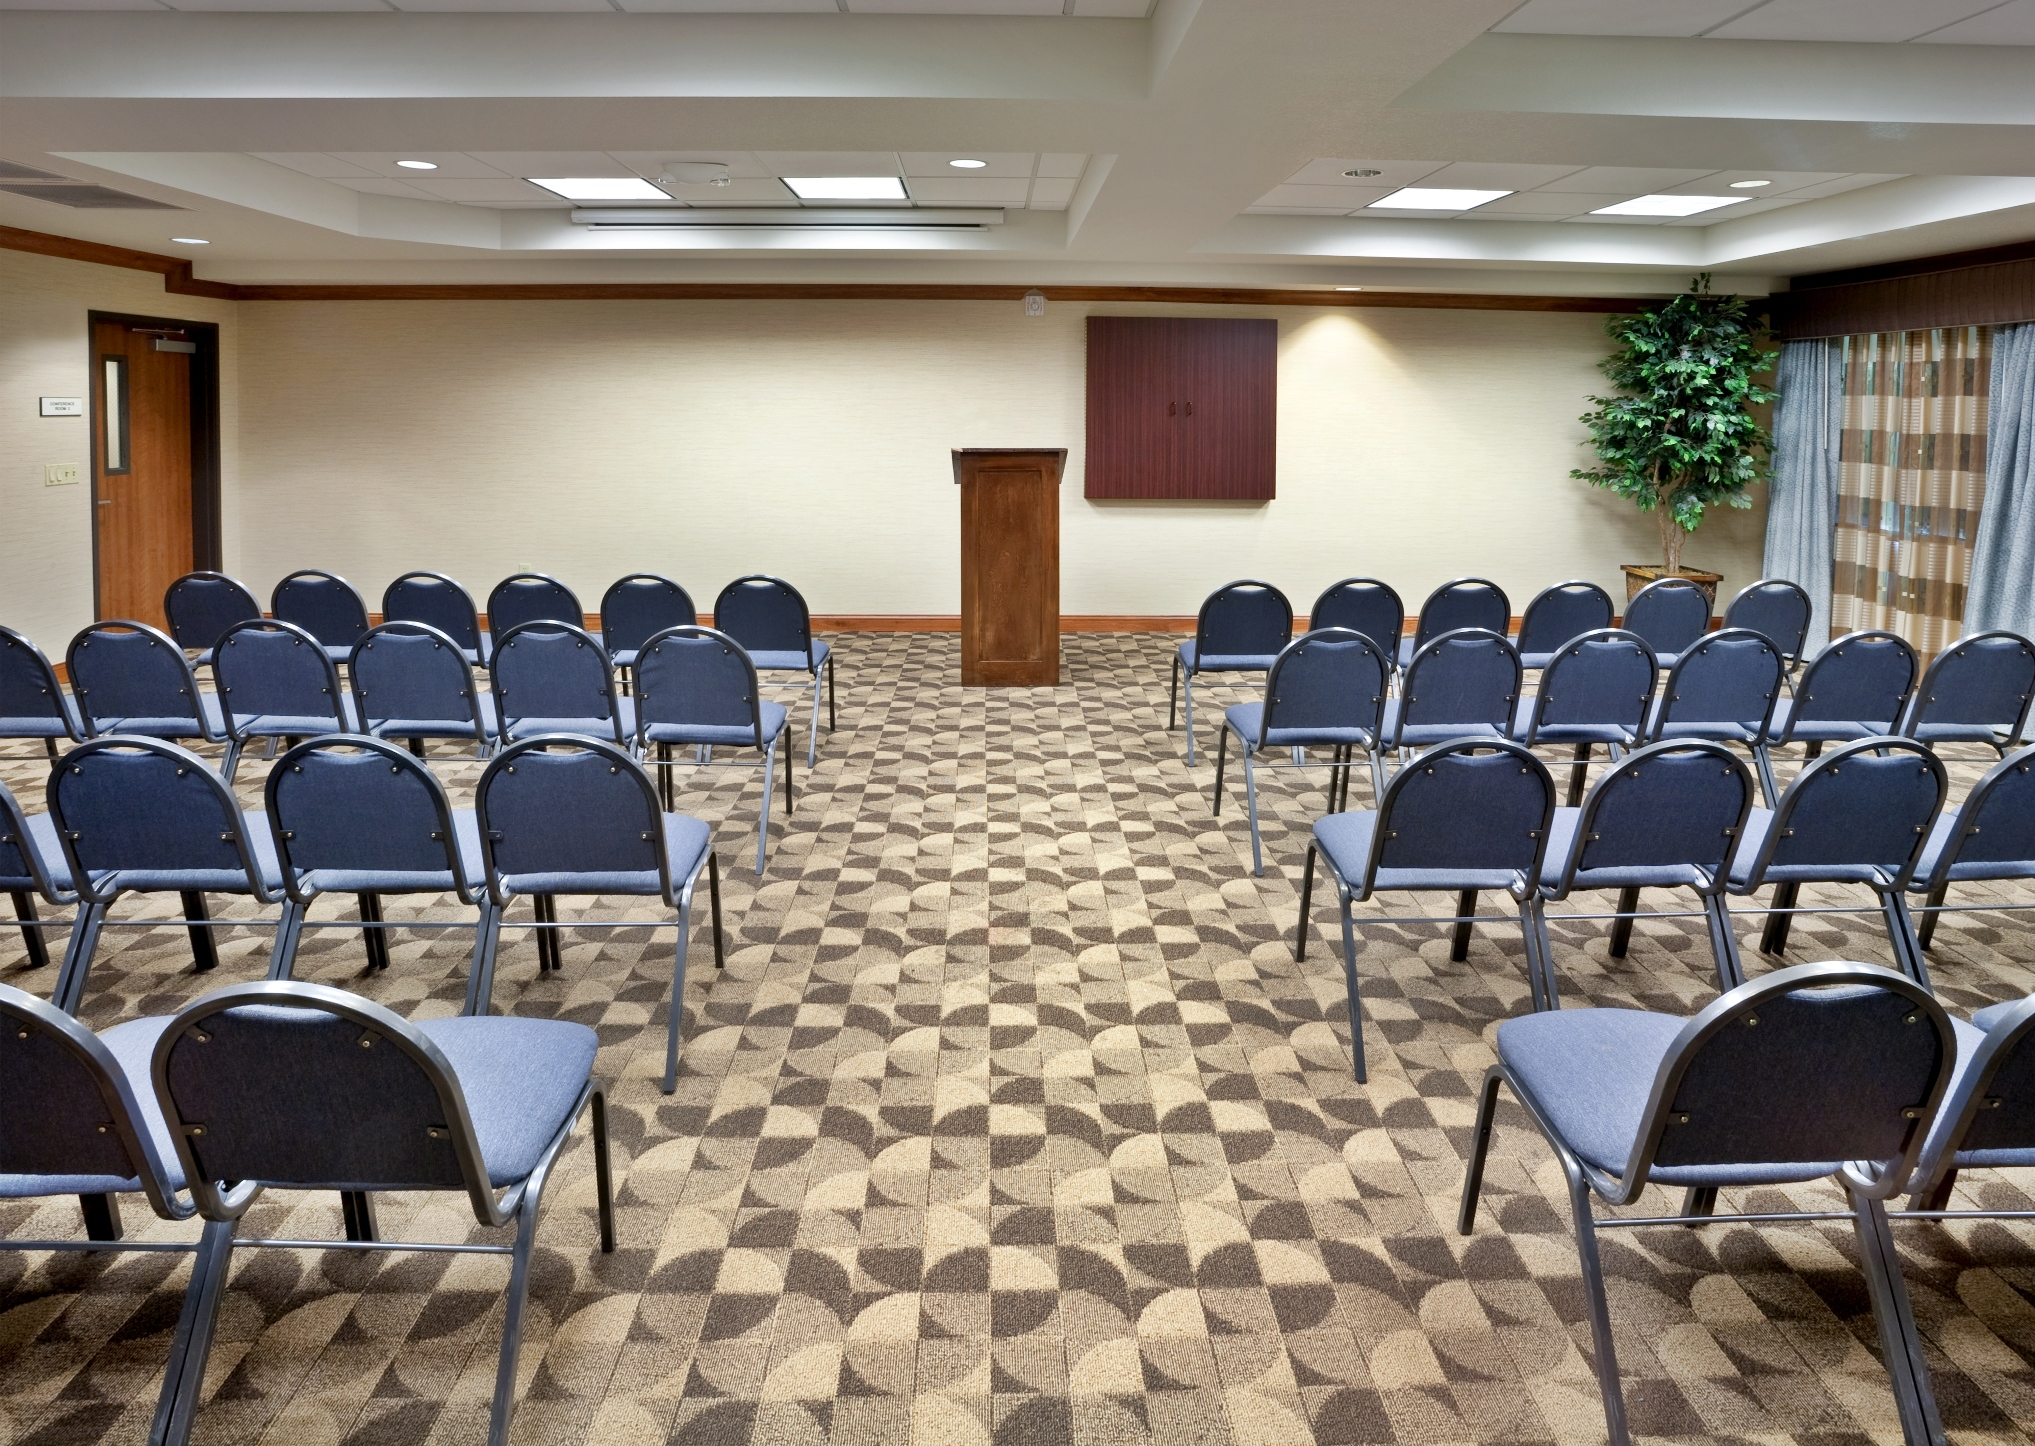 Holiday Inn Express and Suites - Nampa, ID